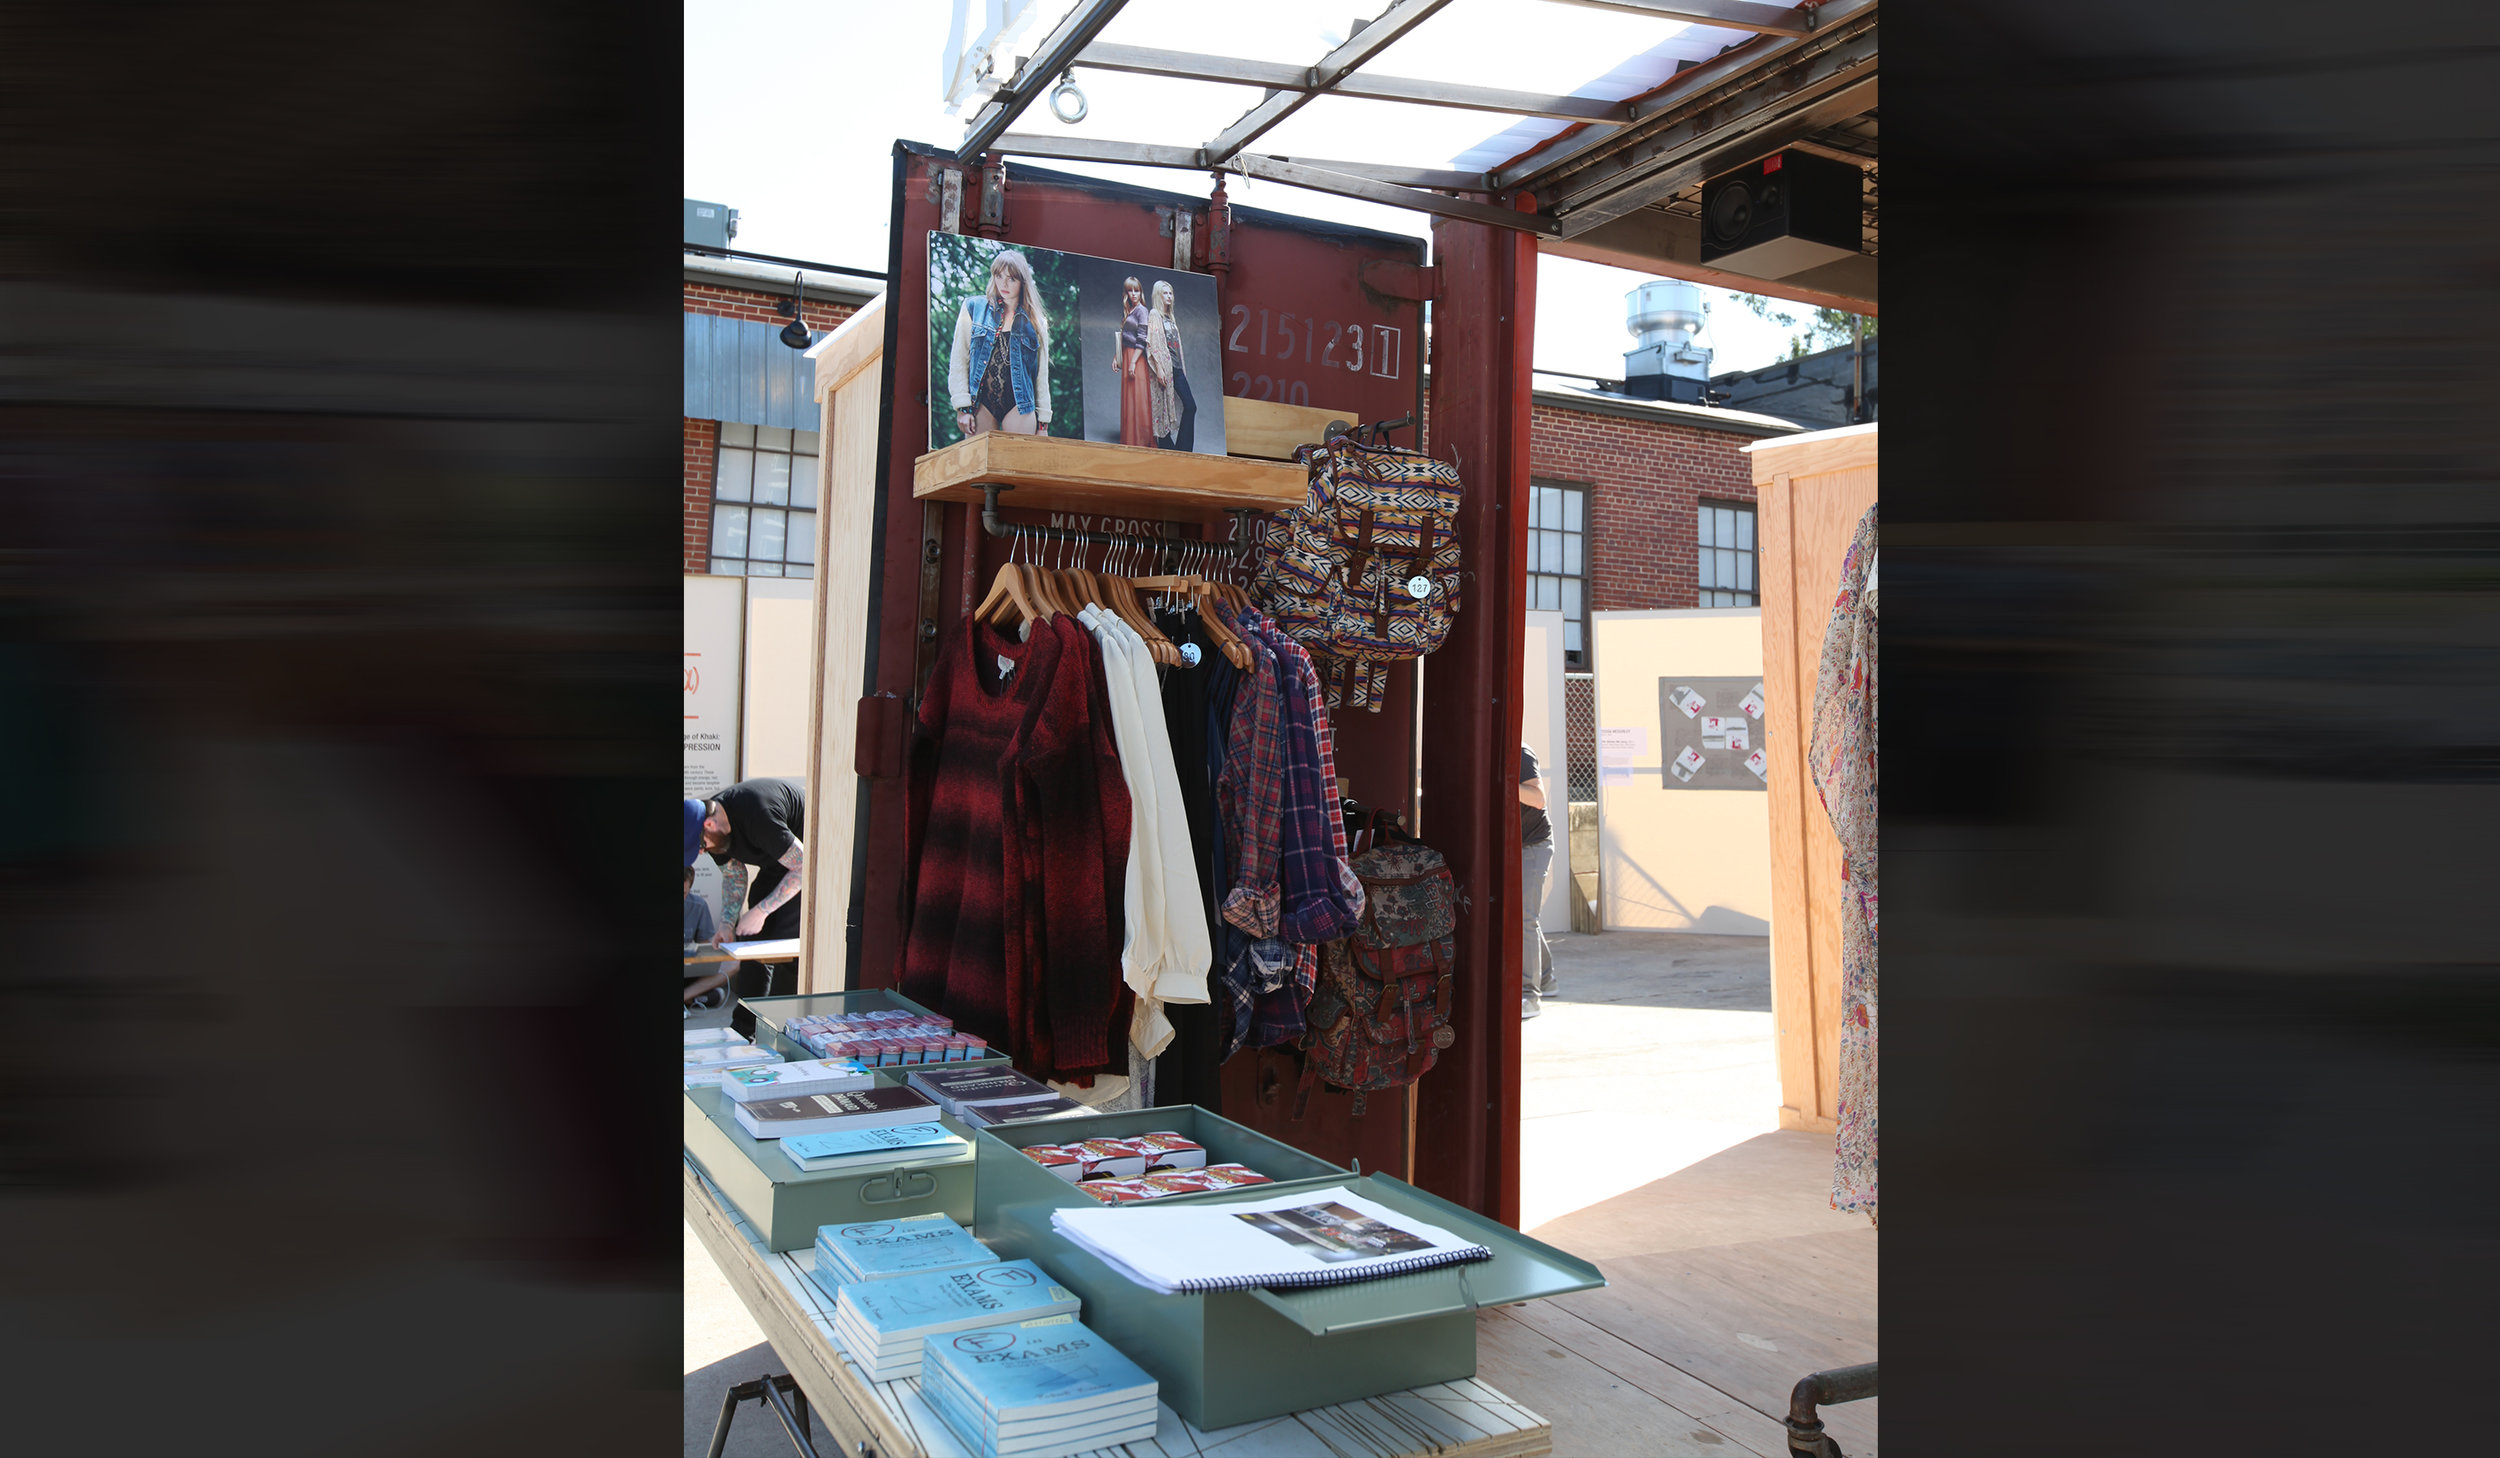 The project was developed to deliver the Urban Outfitters retail experience to US markets that do not yet have a permanent retail presence.